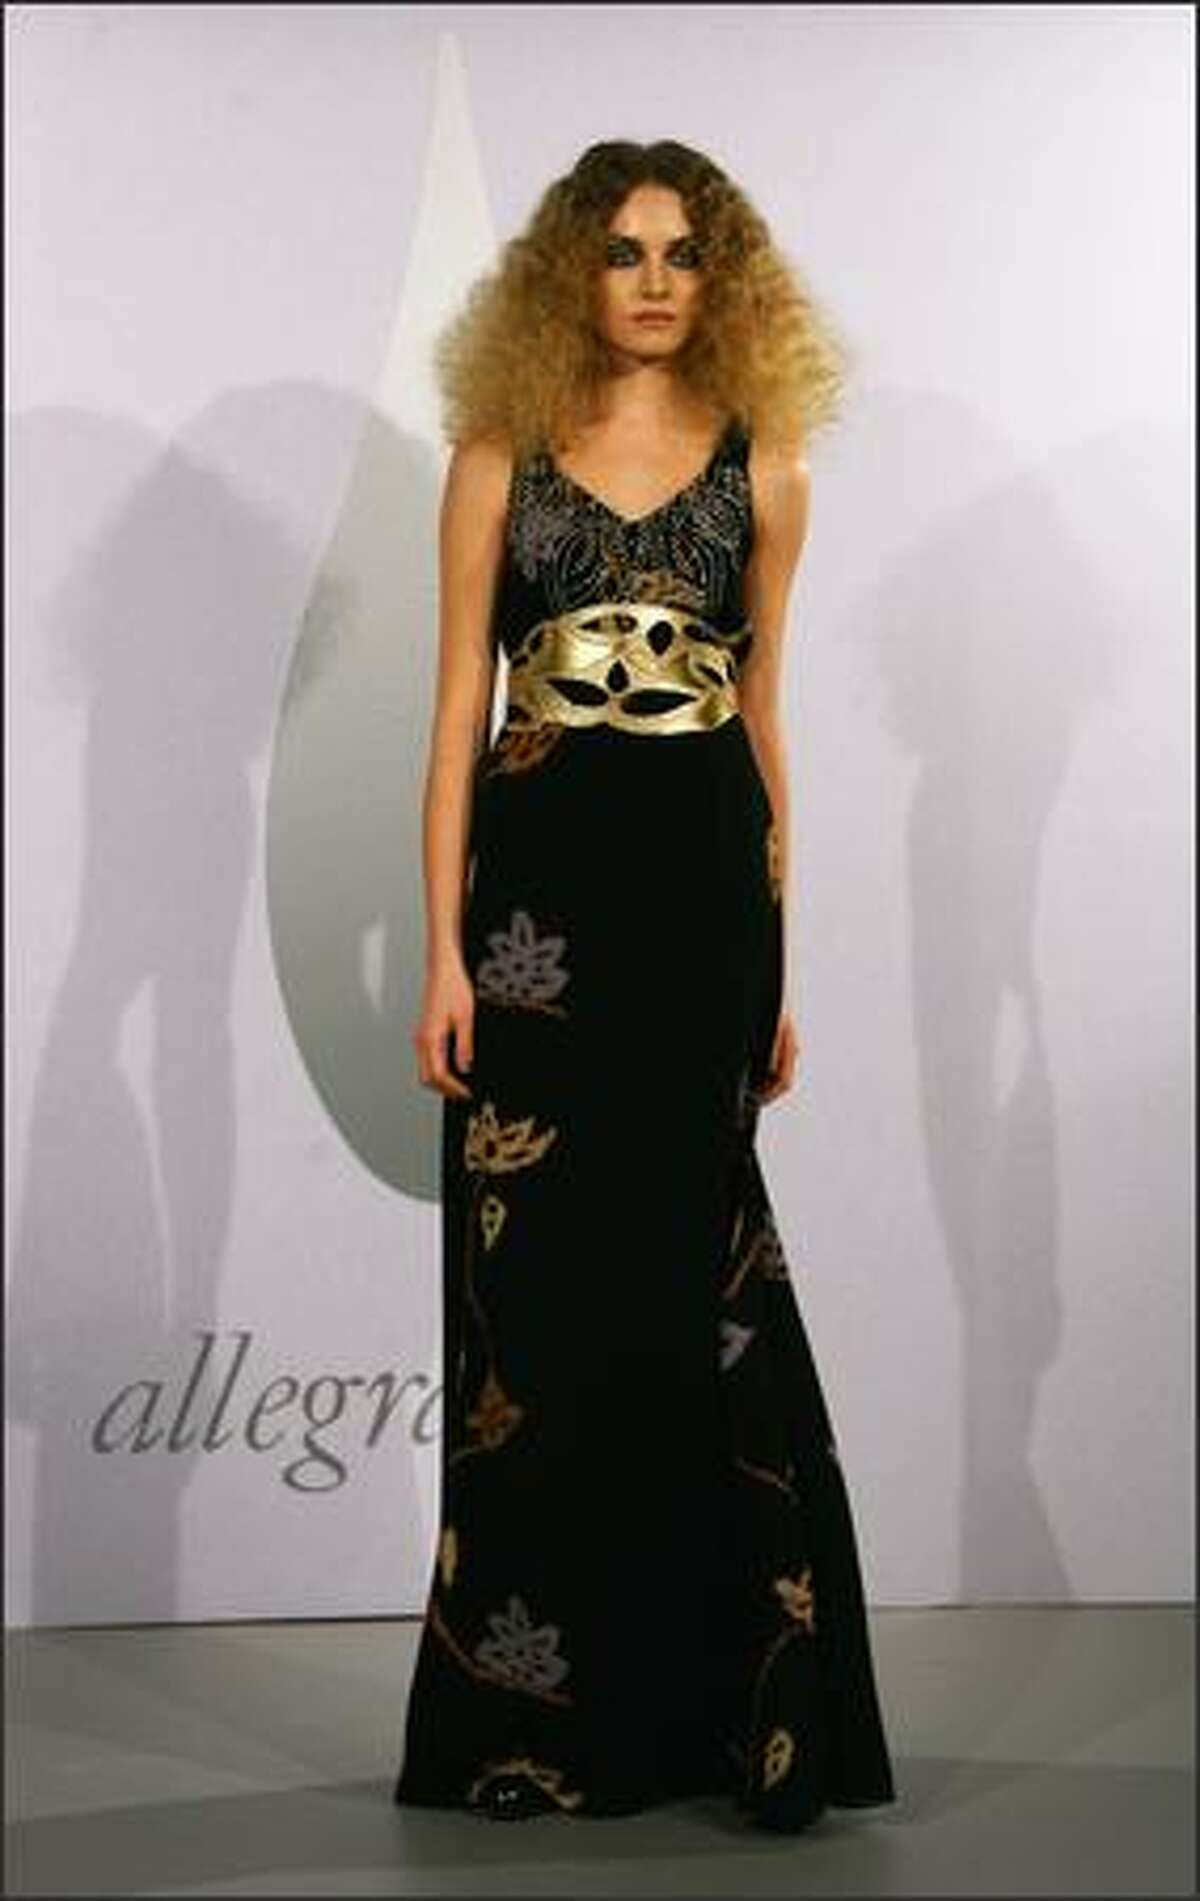 A model displays a creation by Allegra Hicks.